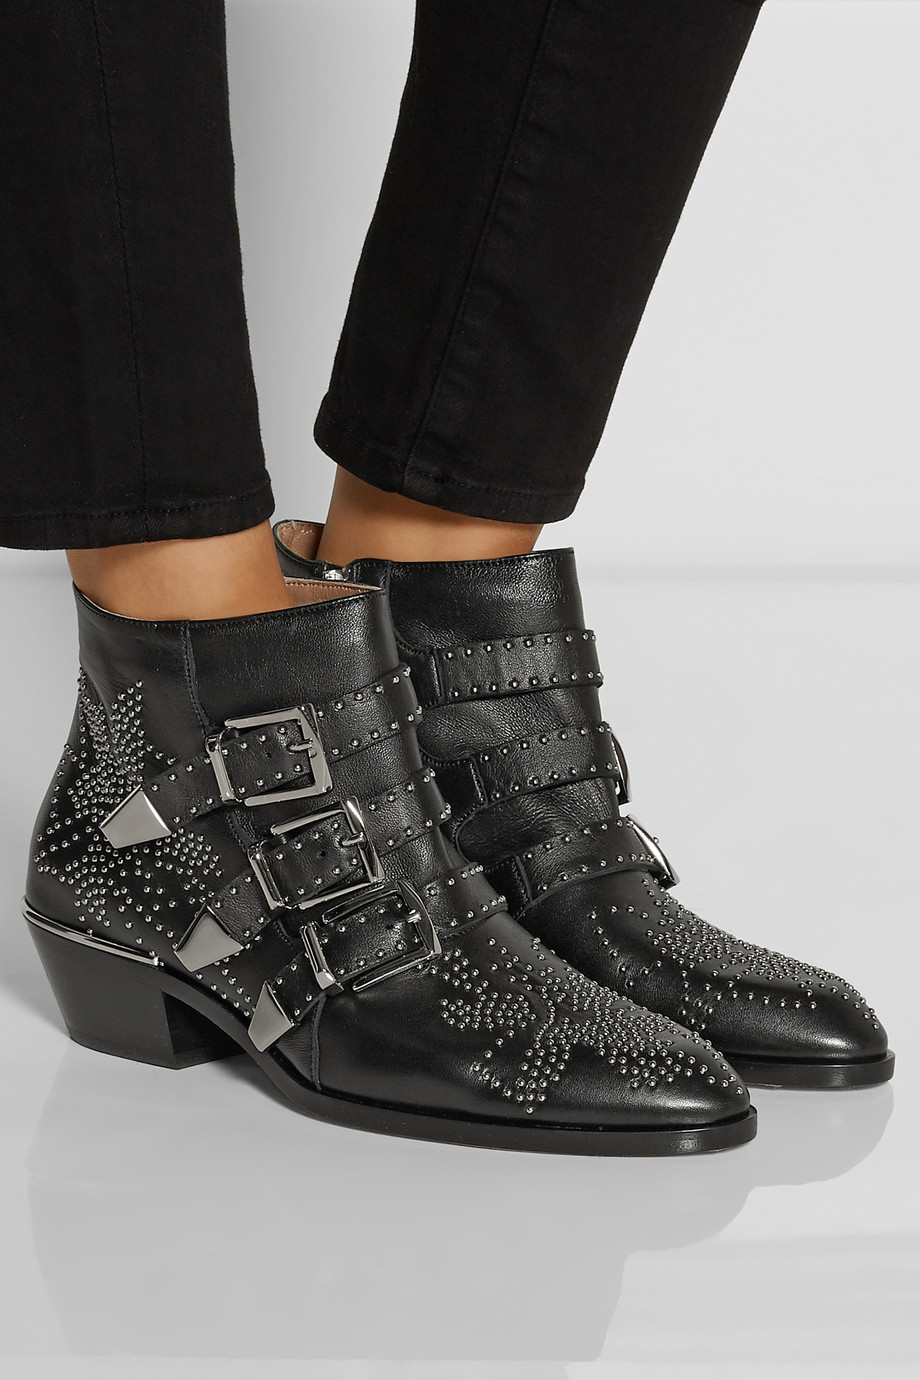 Chloé 'susanna' Ankle Boots in Black | Lyst